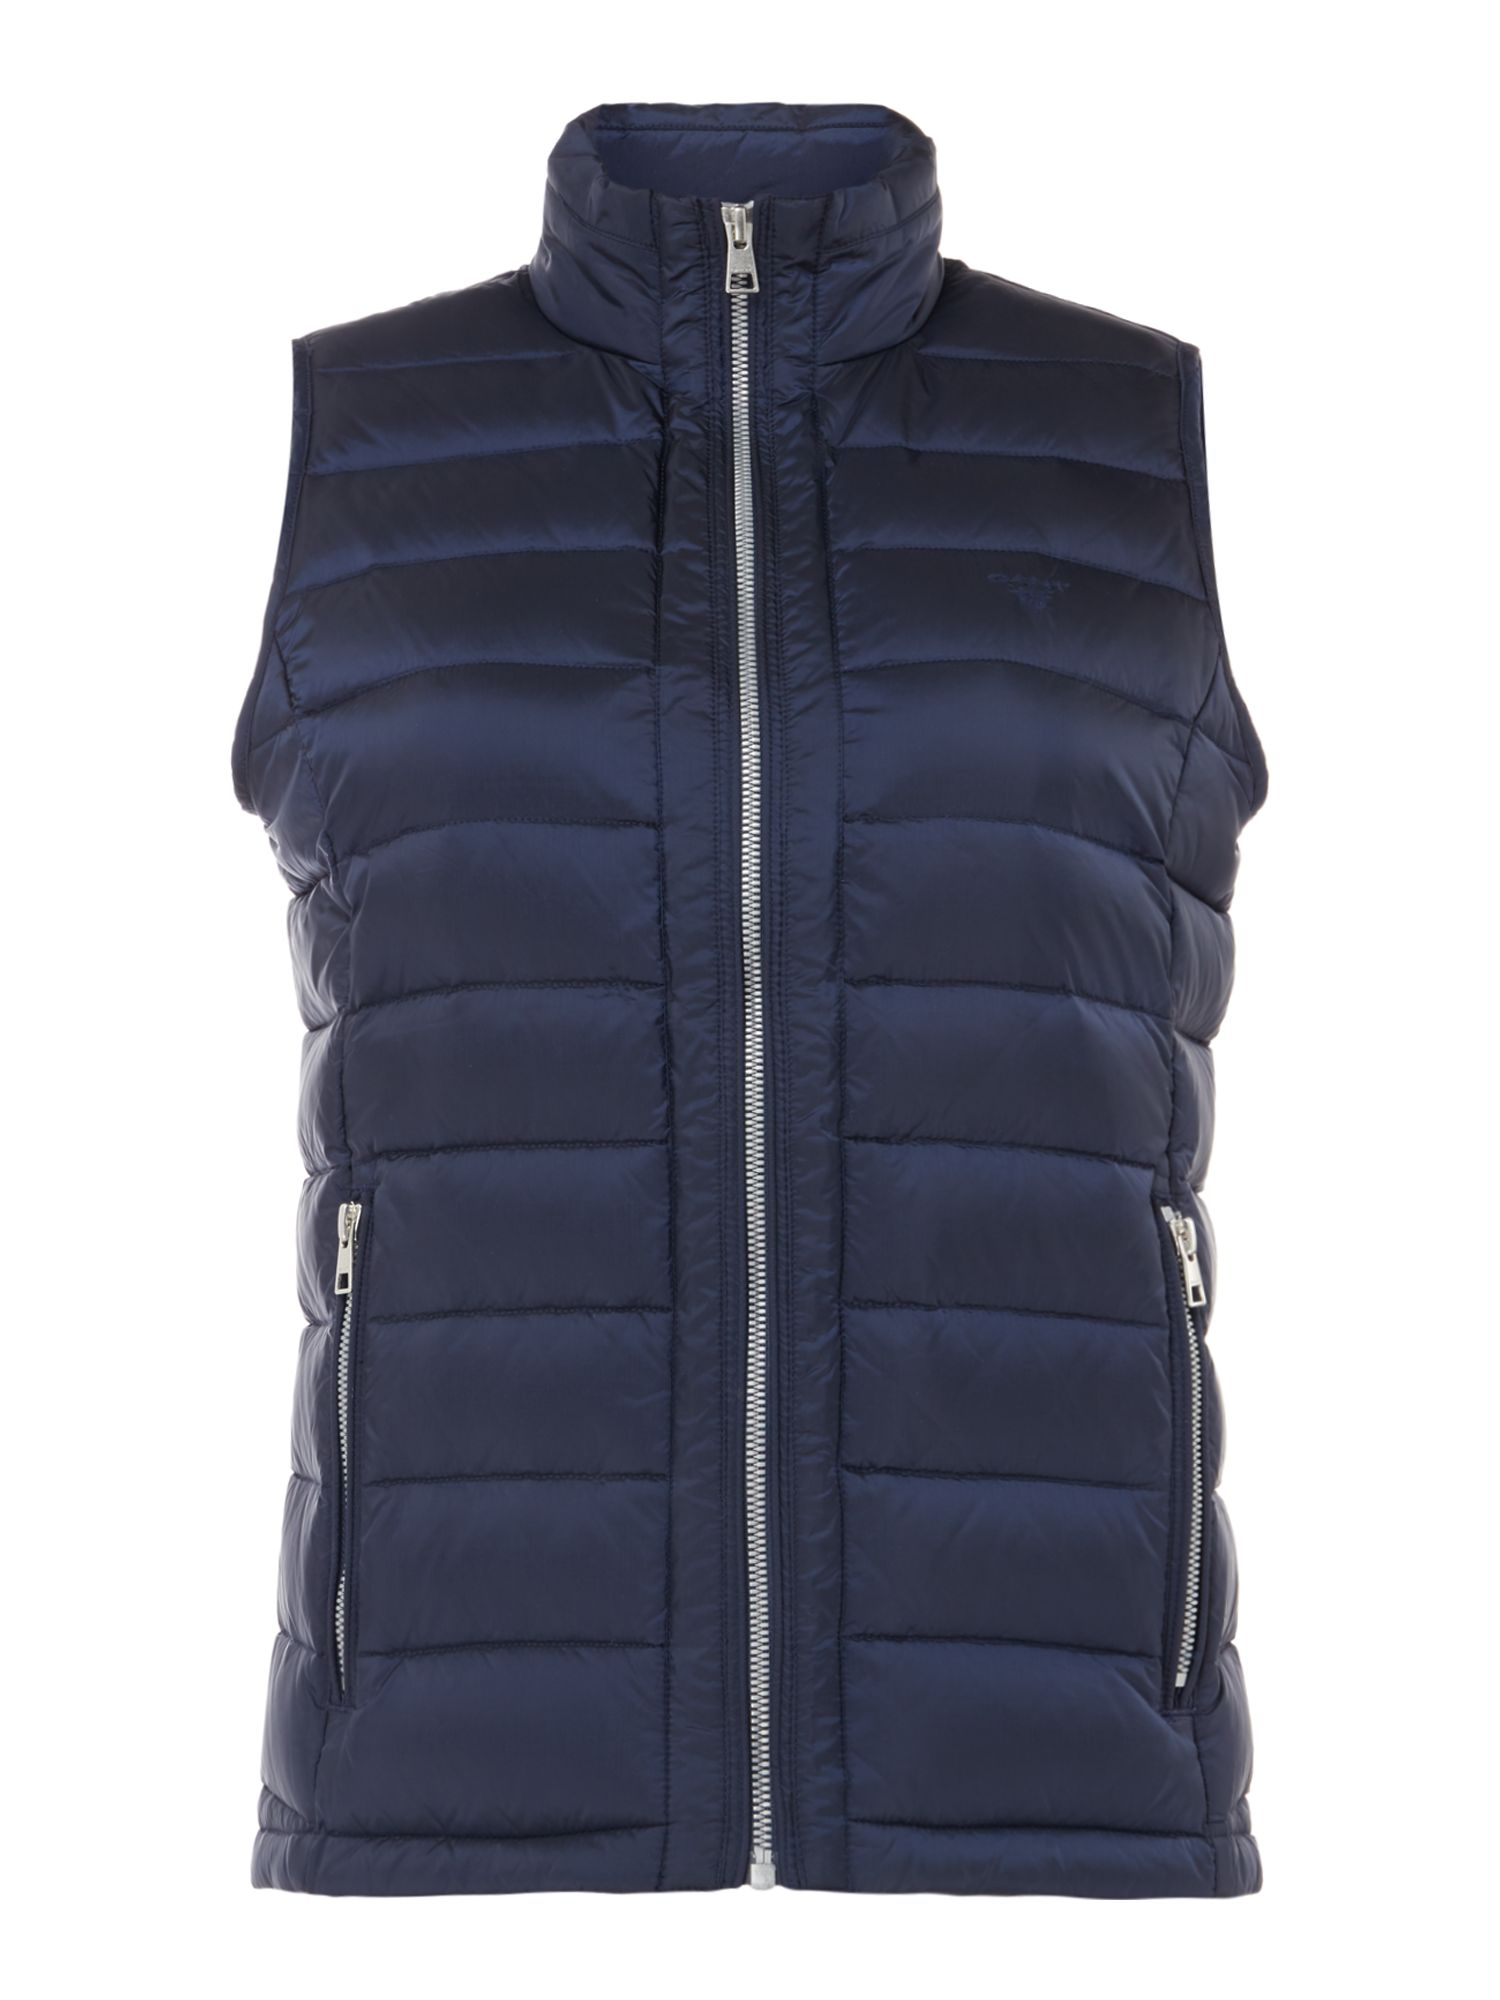 GANT Light Weight Down Quilted Vest With Zip Pockets, Blue